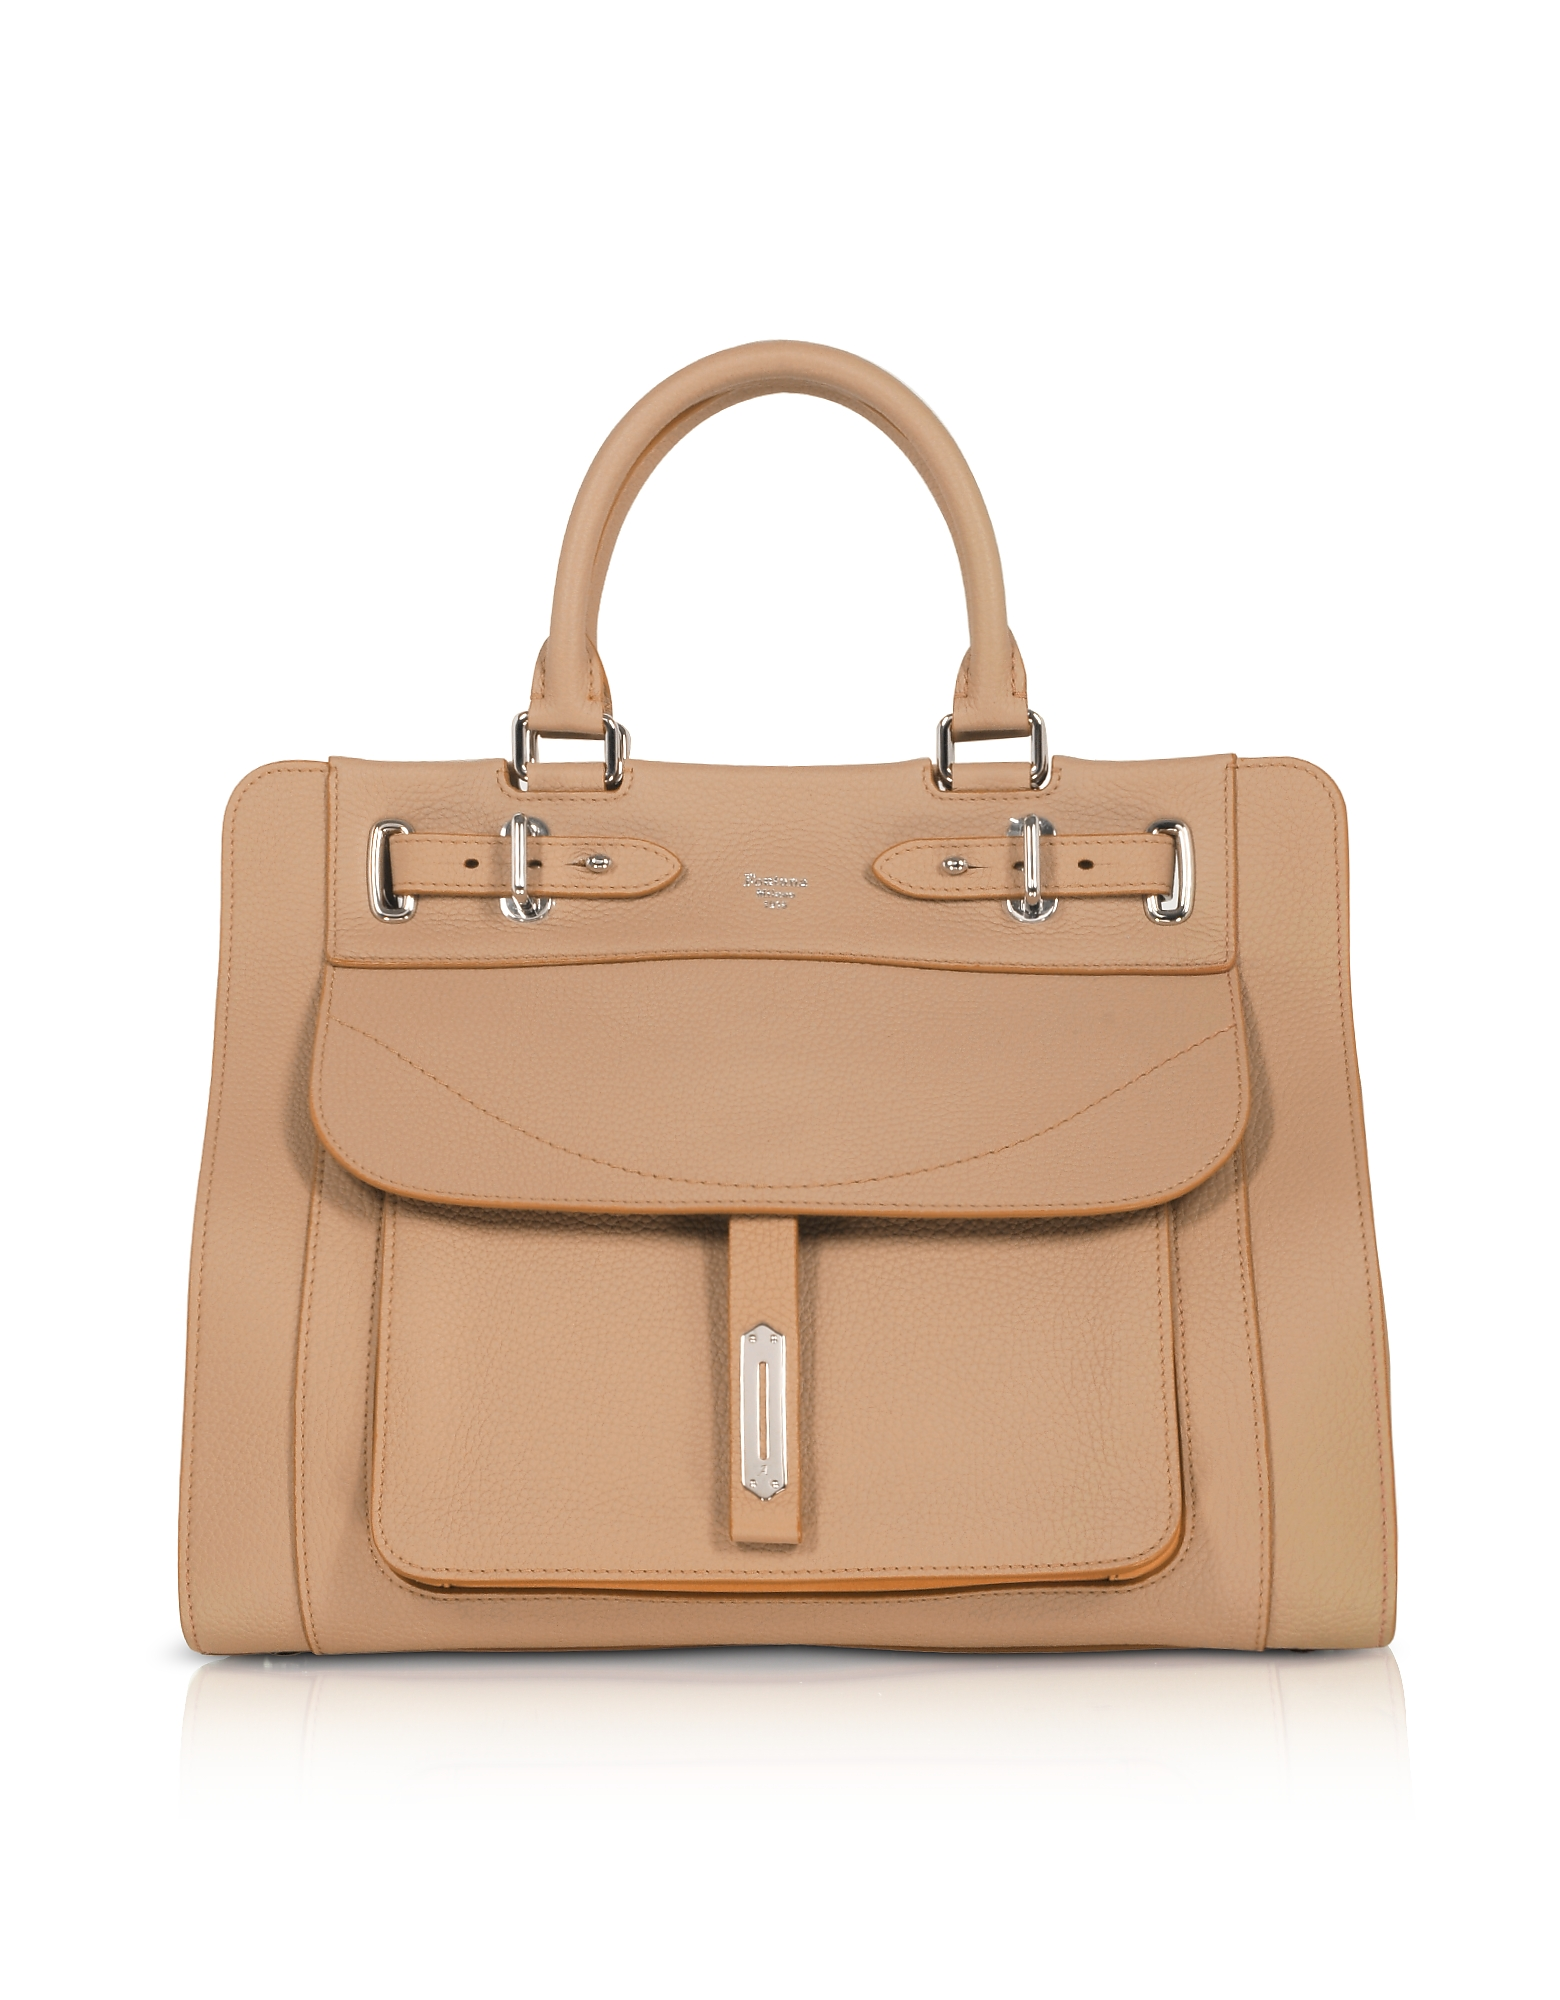 Fontana Milano Designer Handbags, A Satchel Bag